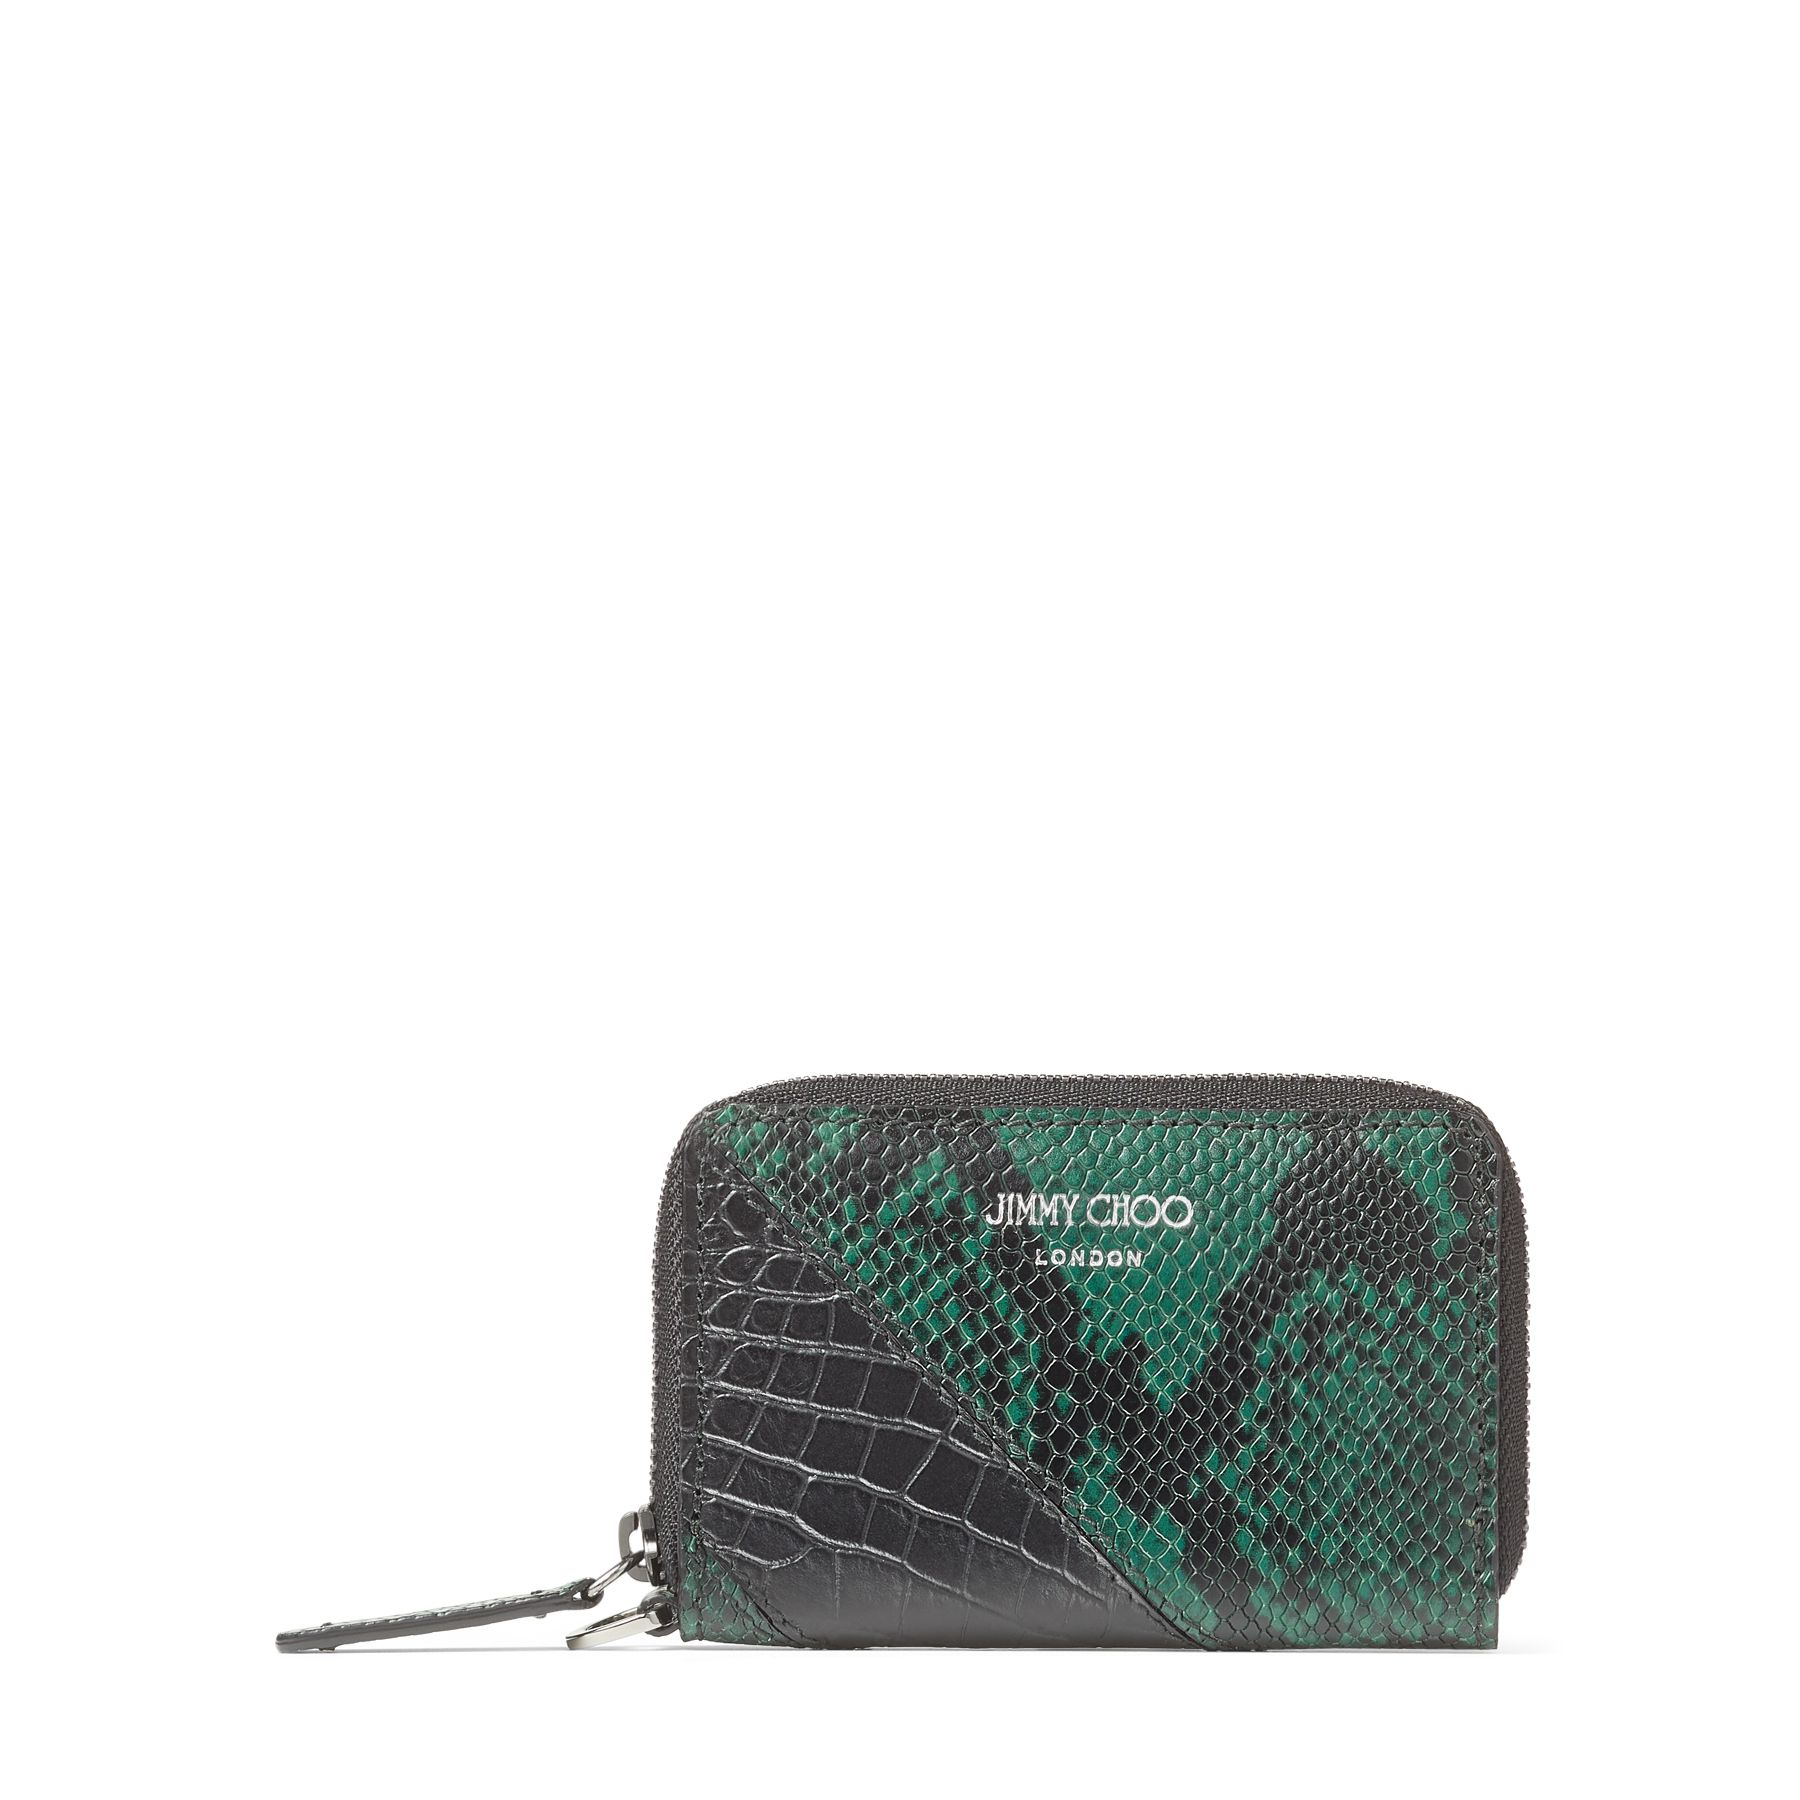 DANNY is a compact coin case made of black croc-embossed leather combined with pine printed python. Ideal for daily use, DANNY is a safe and functional design that can hold cards in addition to coins.